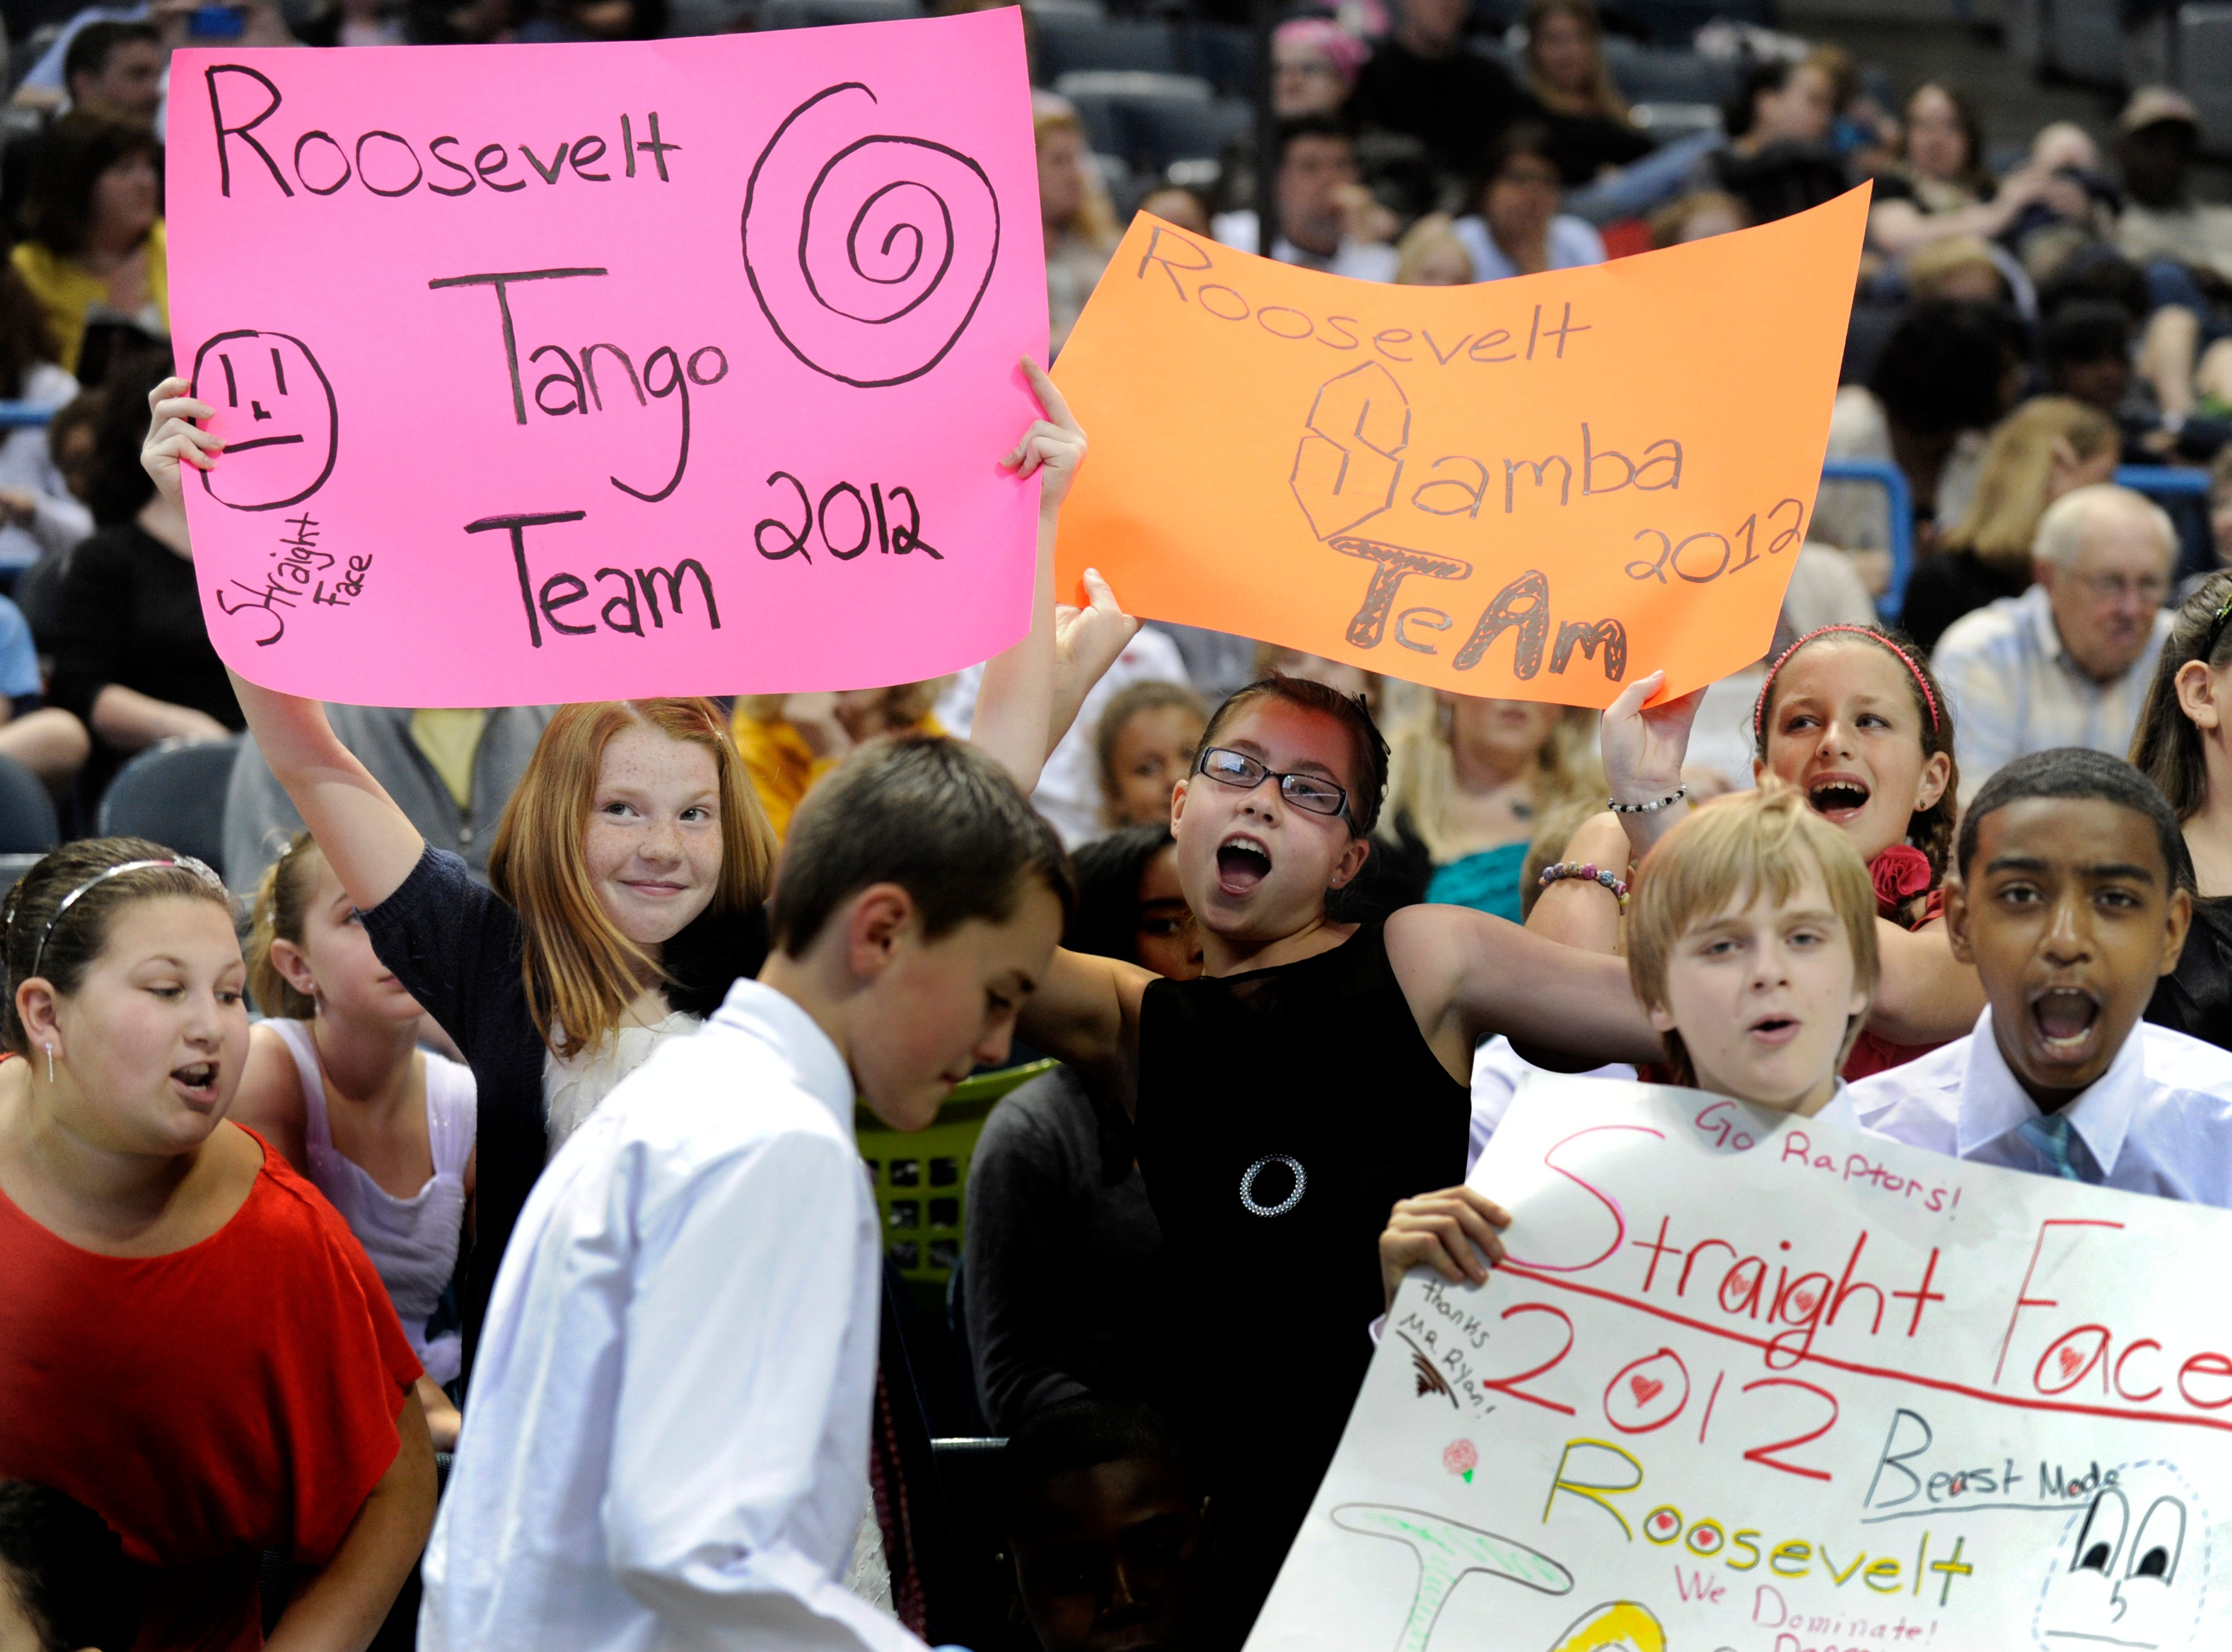 2012: Holding signs and cheering their Roosevelt Elementary School team are (from left) Claire Purcell, Abigail Schermerhorn, Jake Wills and Shamar McLennon during the Danceworks Mad Hot Ballroom and Tap competition at the Bradley Center.